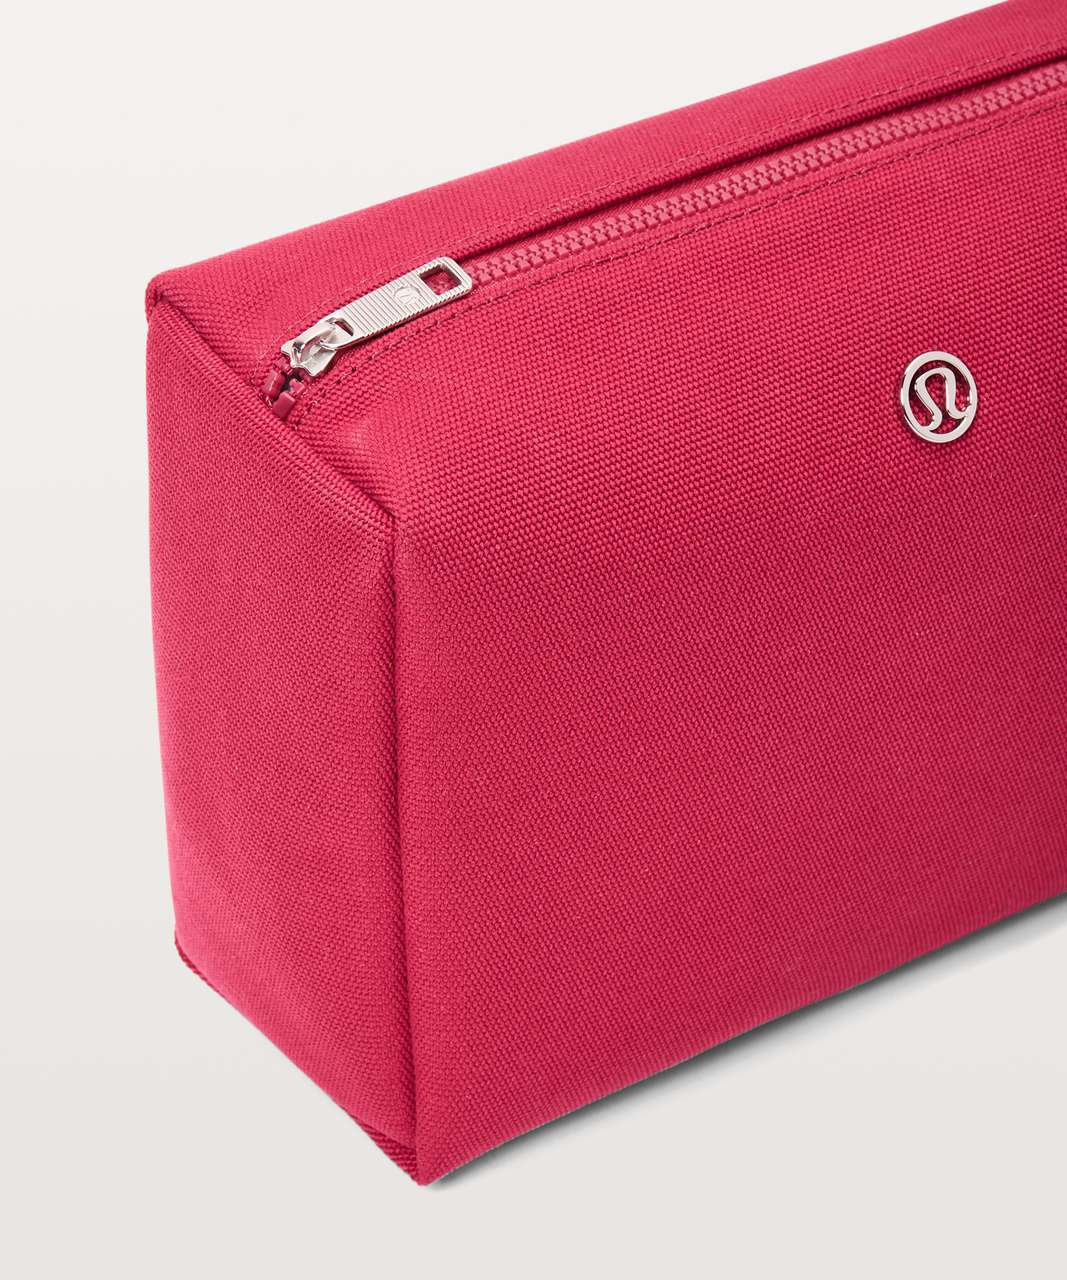 Lululemon All Your Small Things Pouch *Canvas 4L - Ruby Red